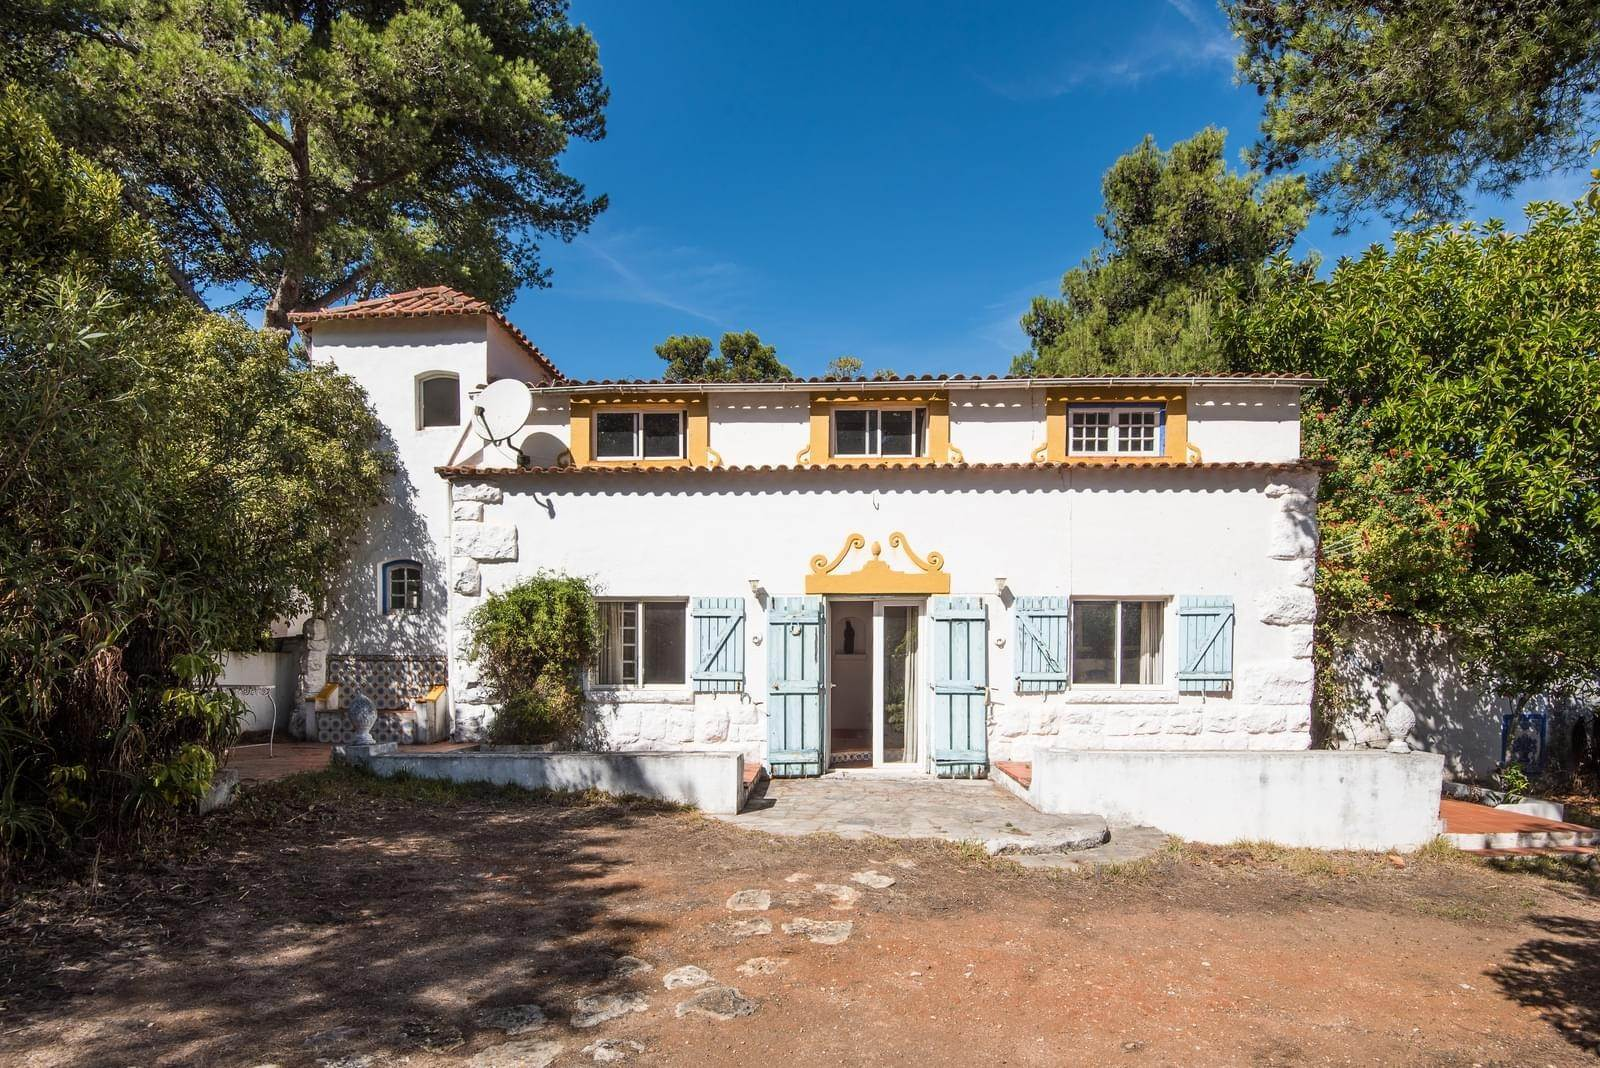 12. 別墅 / 联排别墅 為 出售 在 Unique property, located next to Quinta da Marinha, a quiet area.The property comprises six small villas, with deep refu... Cascais, 葡萄牙